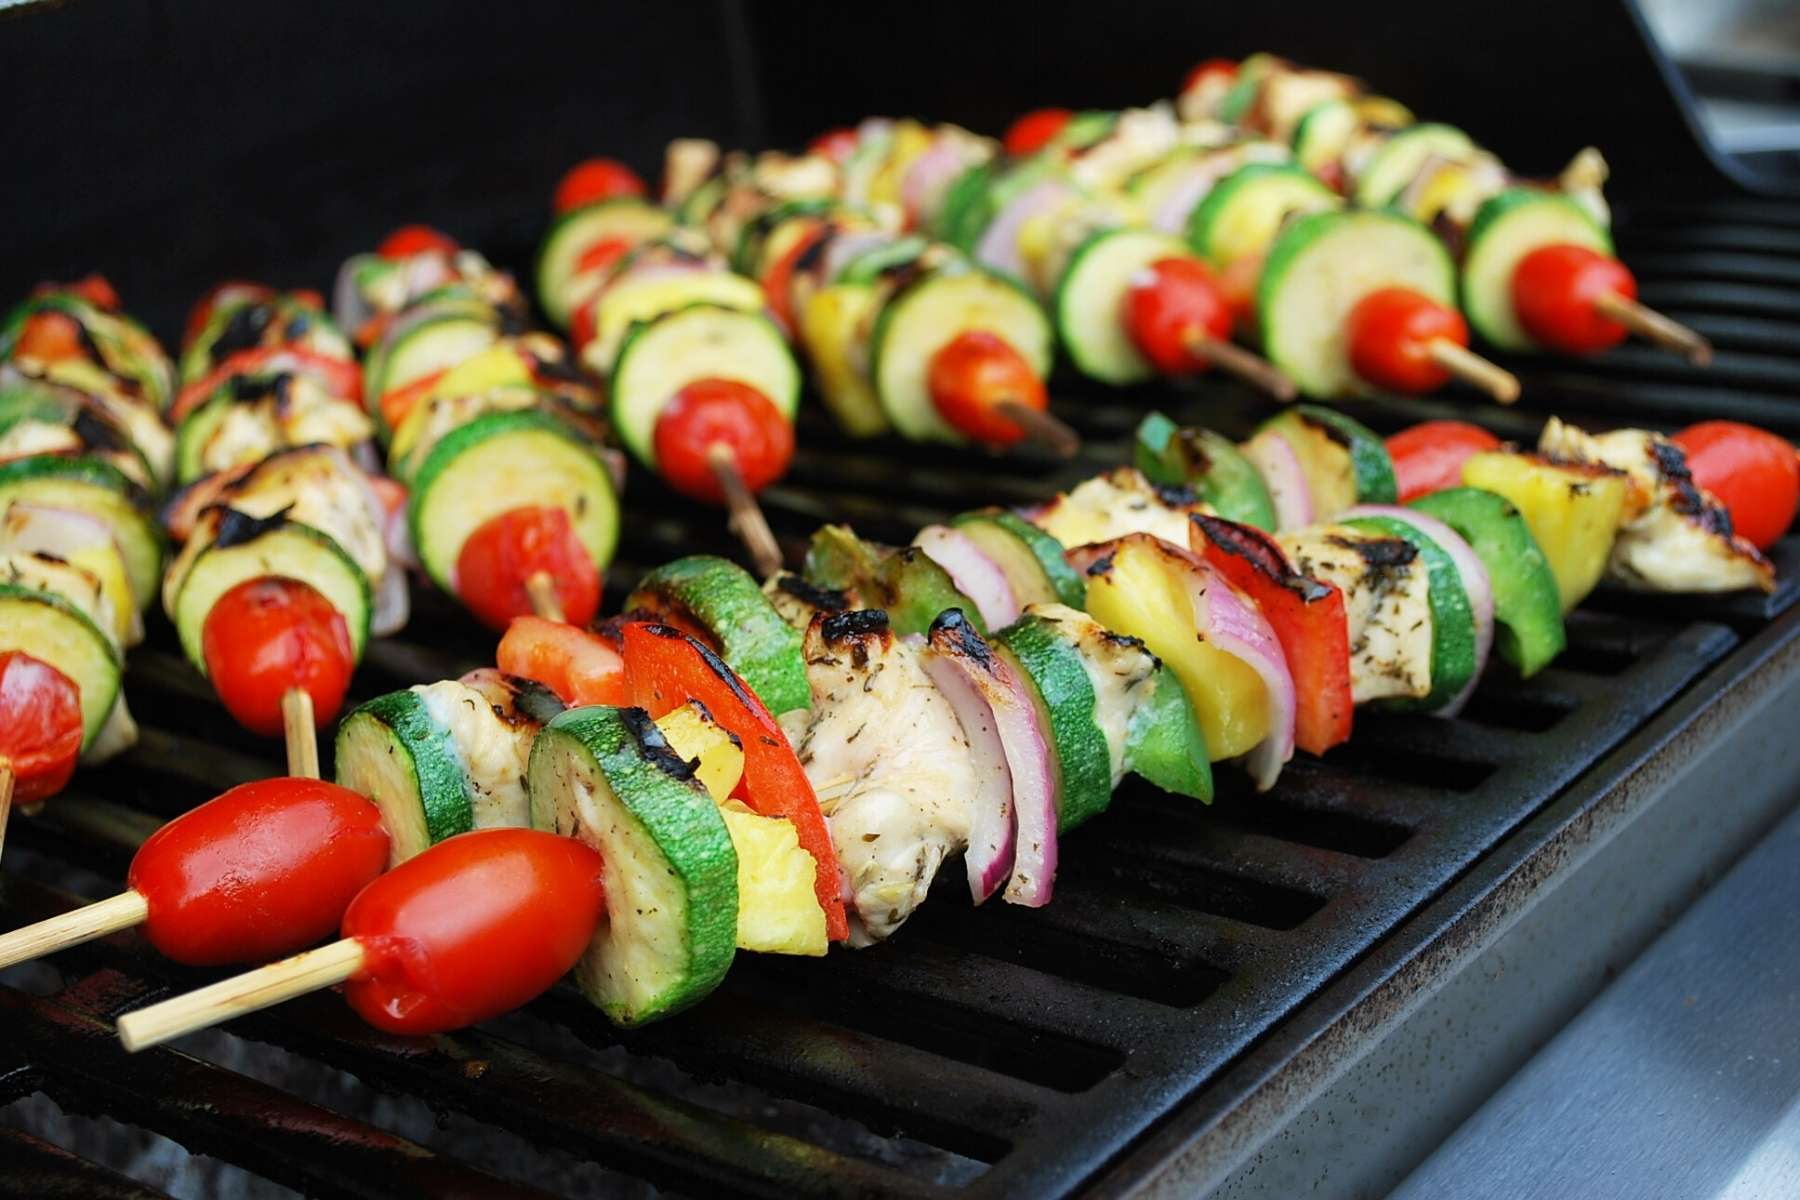 kabobs cooking on a grill